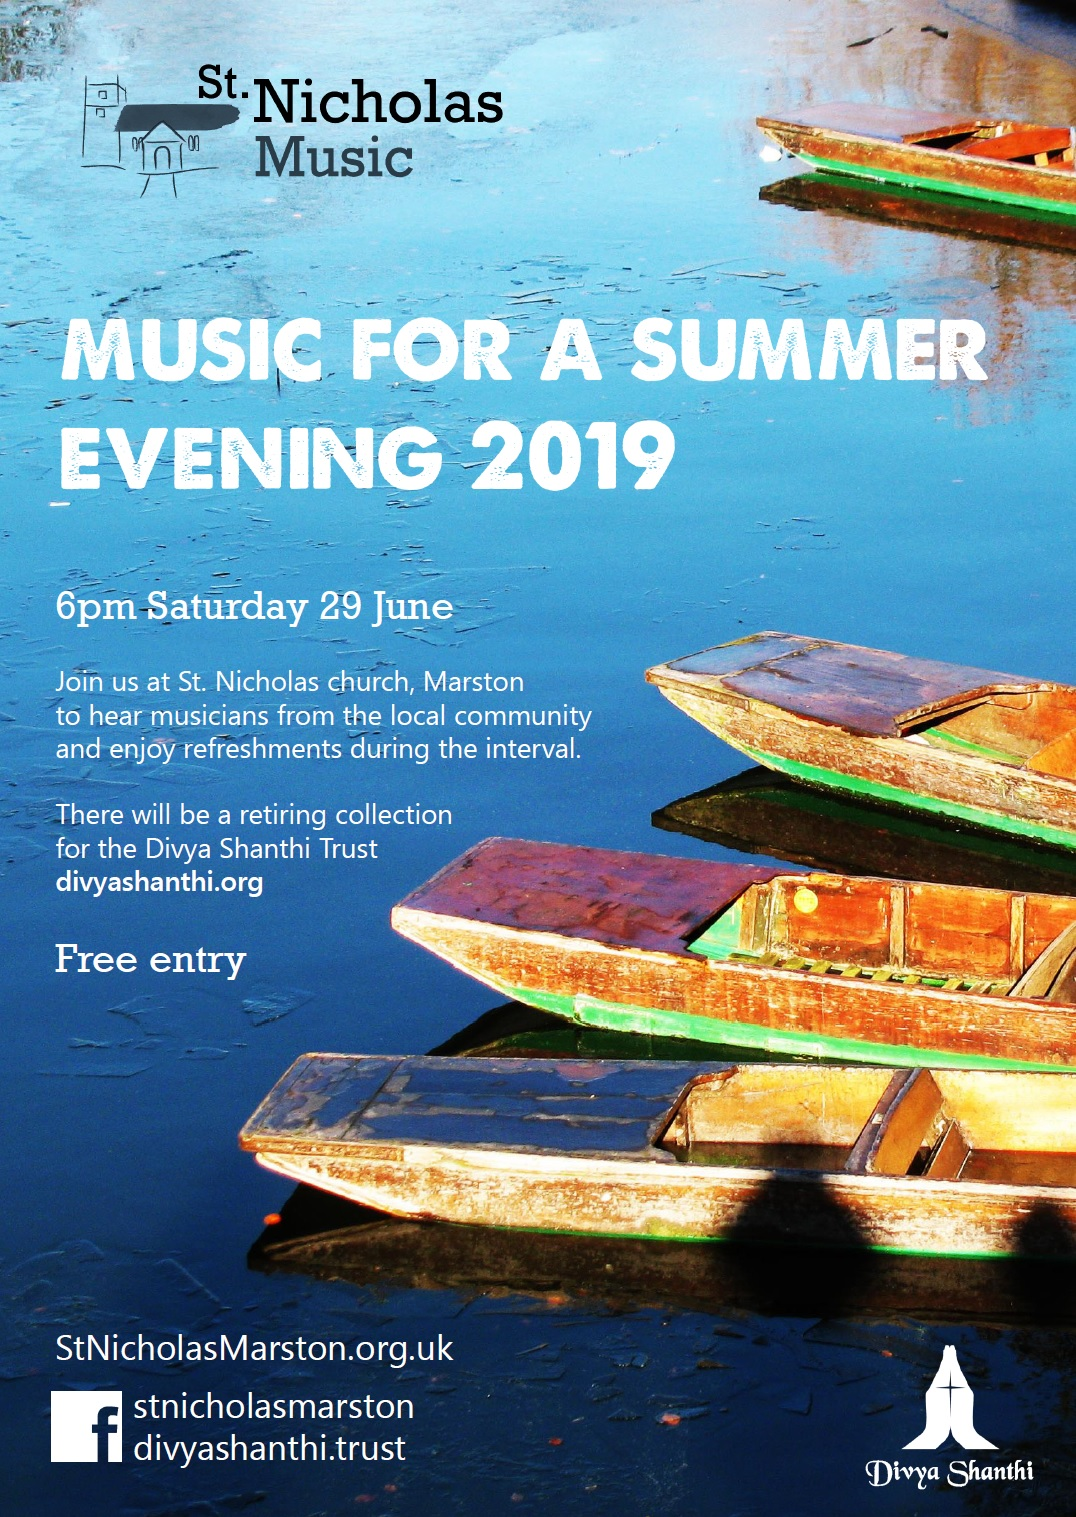 Music for a Summer Evening